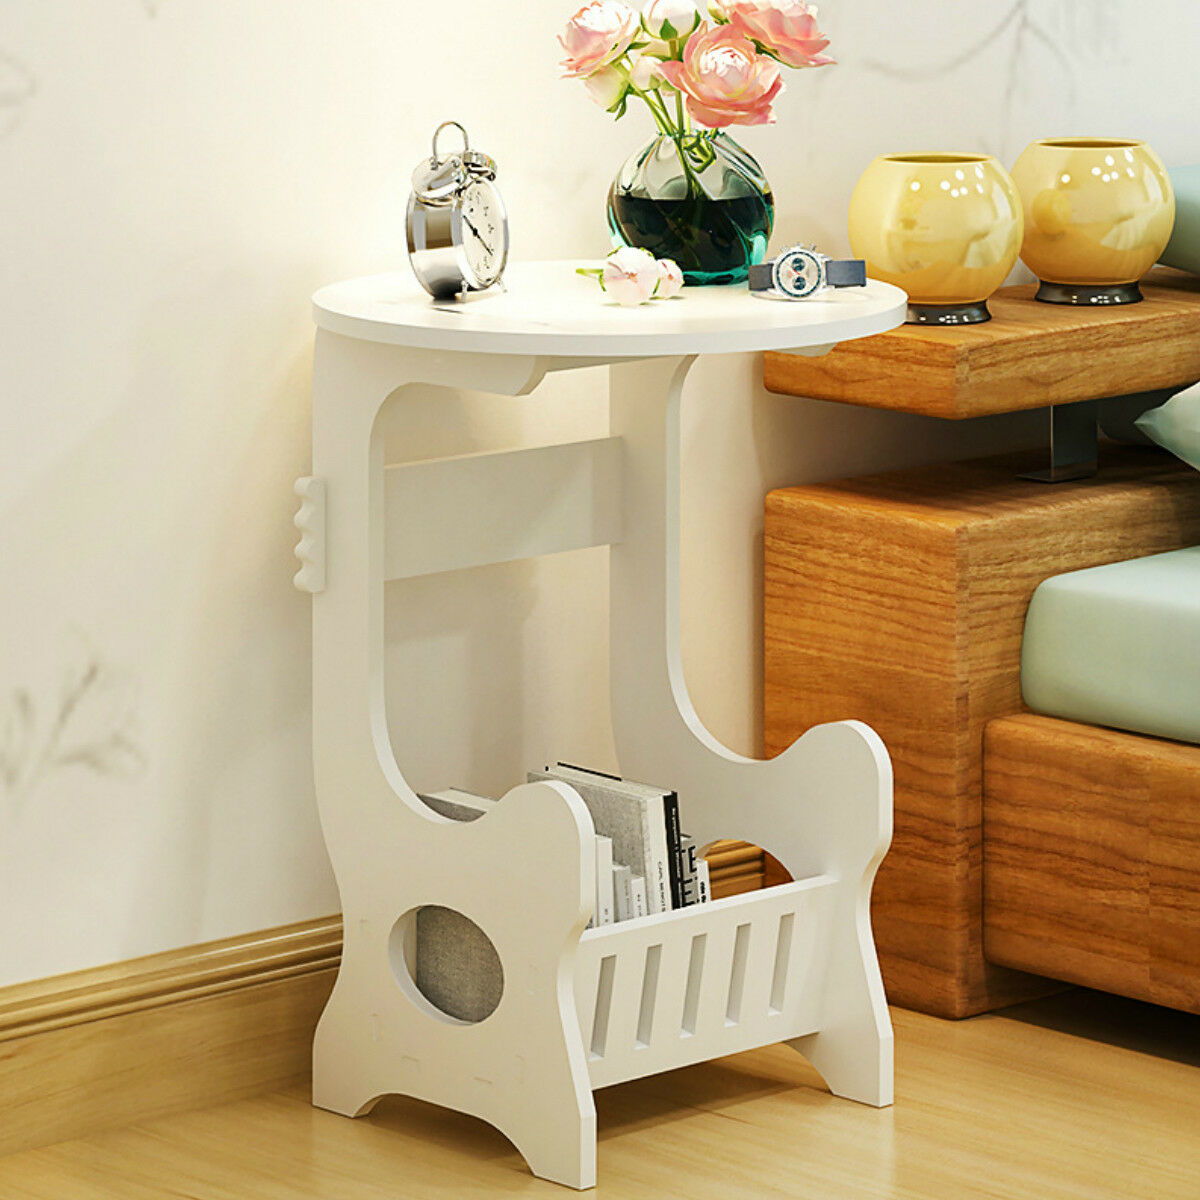 Details About Wood Table With Shelf Nightstand Bedroom Living Room Sofa Side End Table White